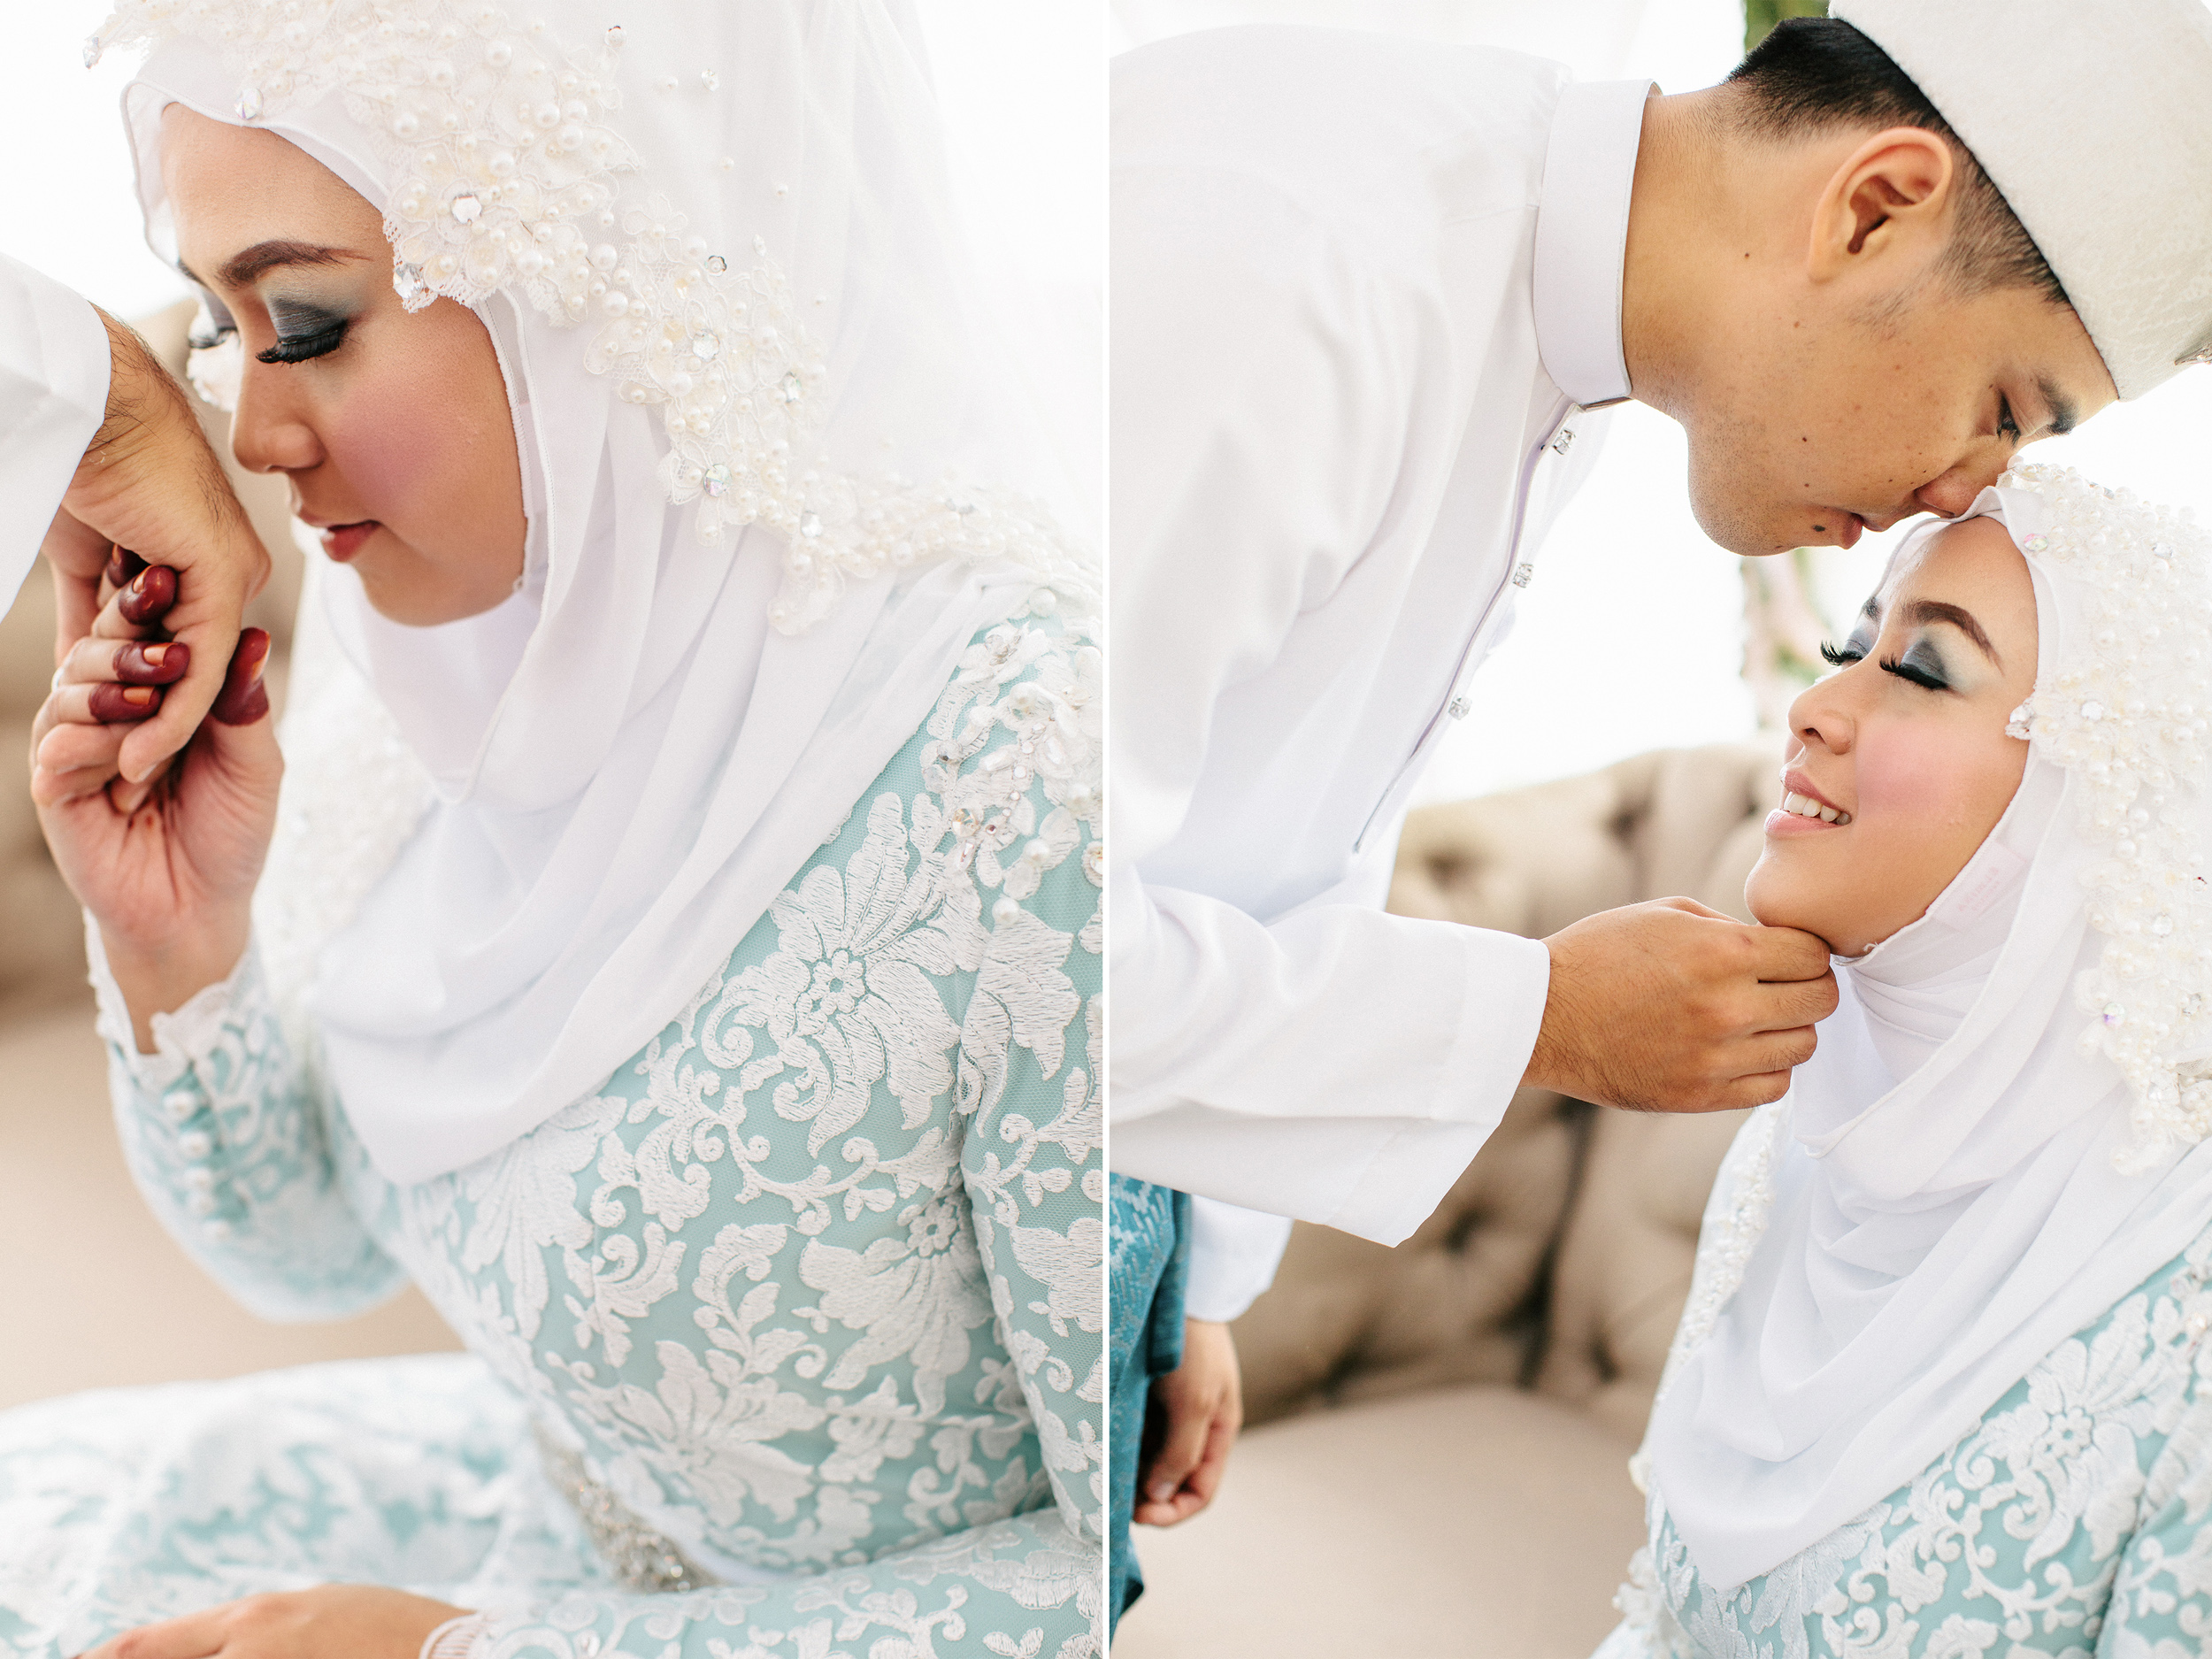 singapore-wedding-photographer-wemadethese-aisyah-helmi-21.jpg